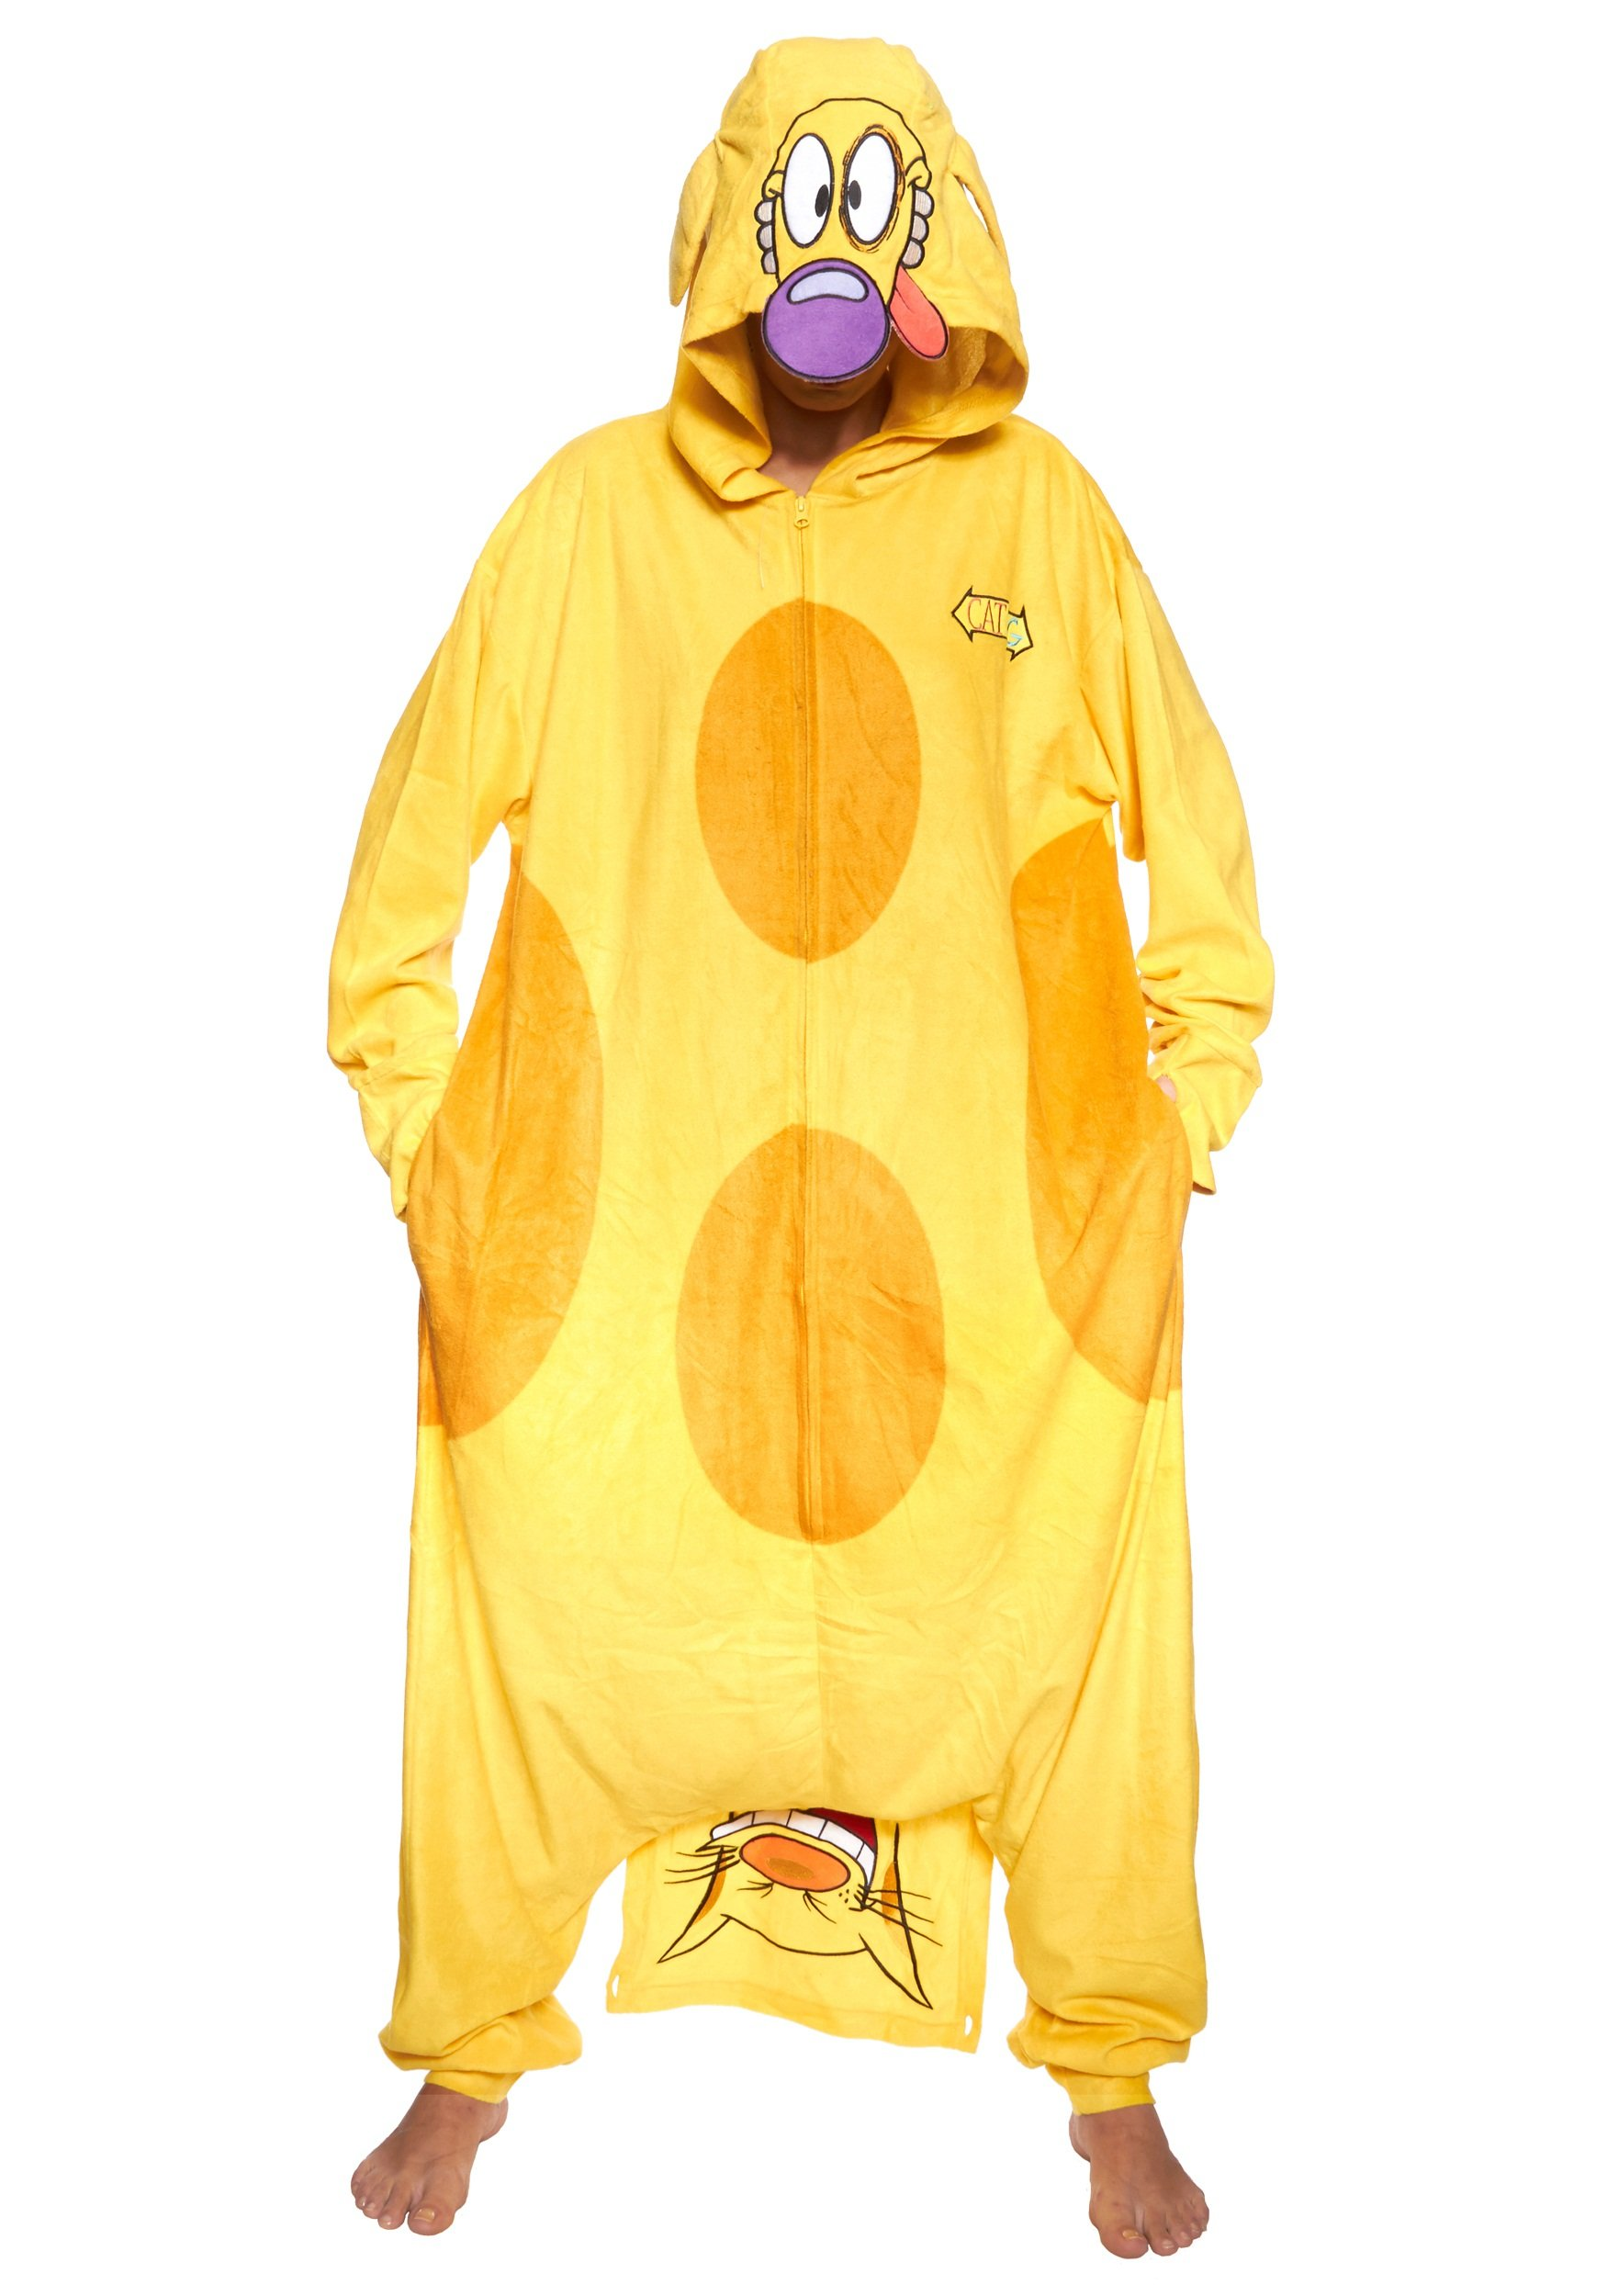 Cat Dog Adult Kigurumi Pajama